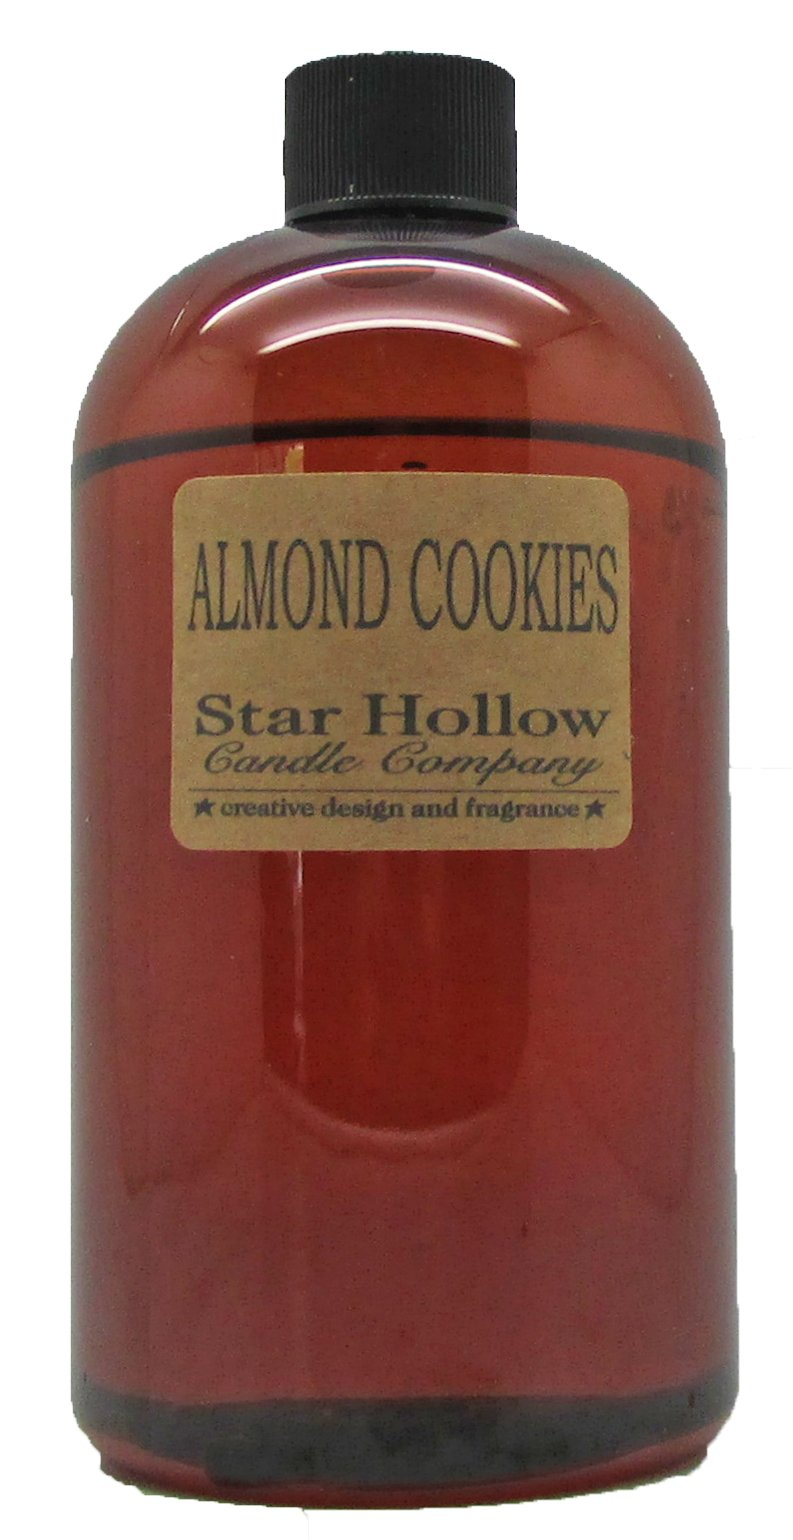 Star Hollow Candle Co Almond Cookies Fragrance Oil, 16 oz, Brown by Star Hollow Candle Co